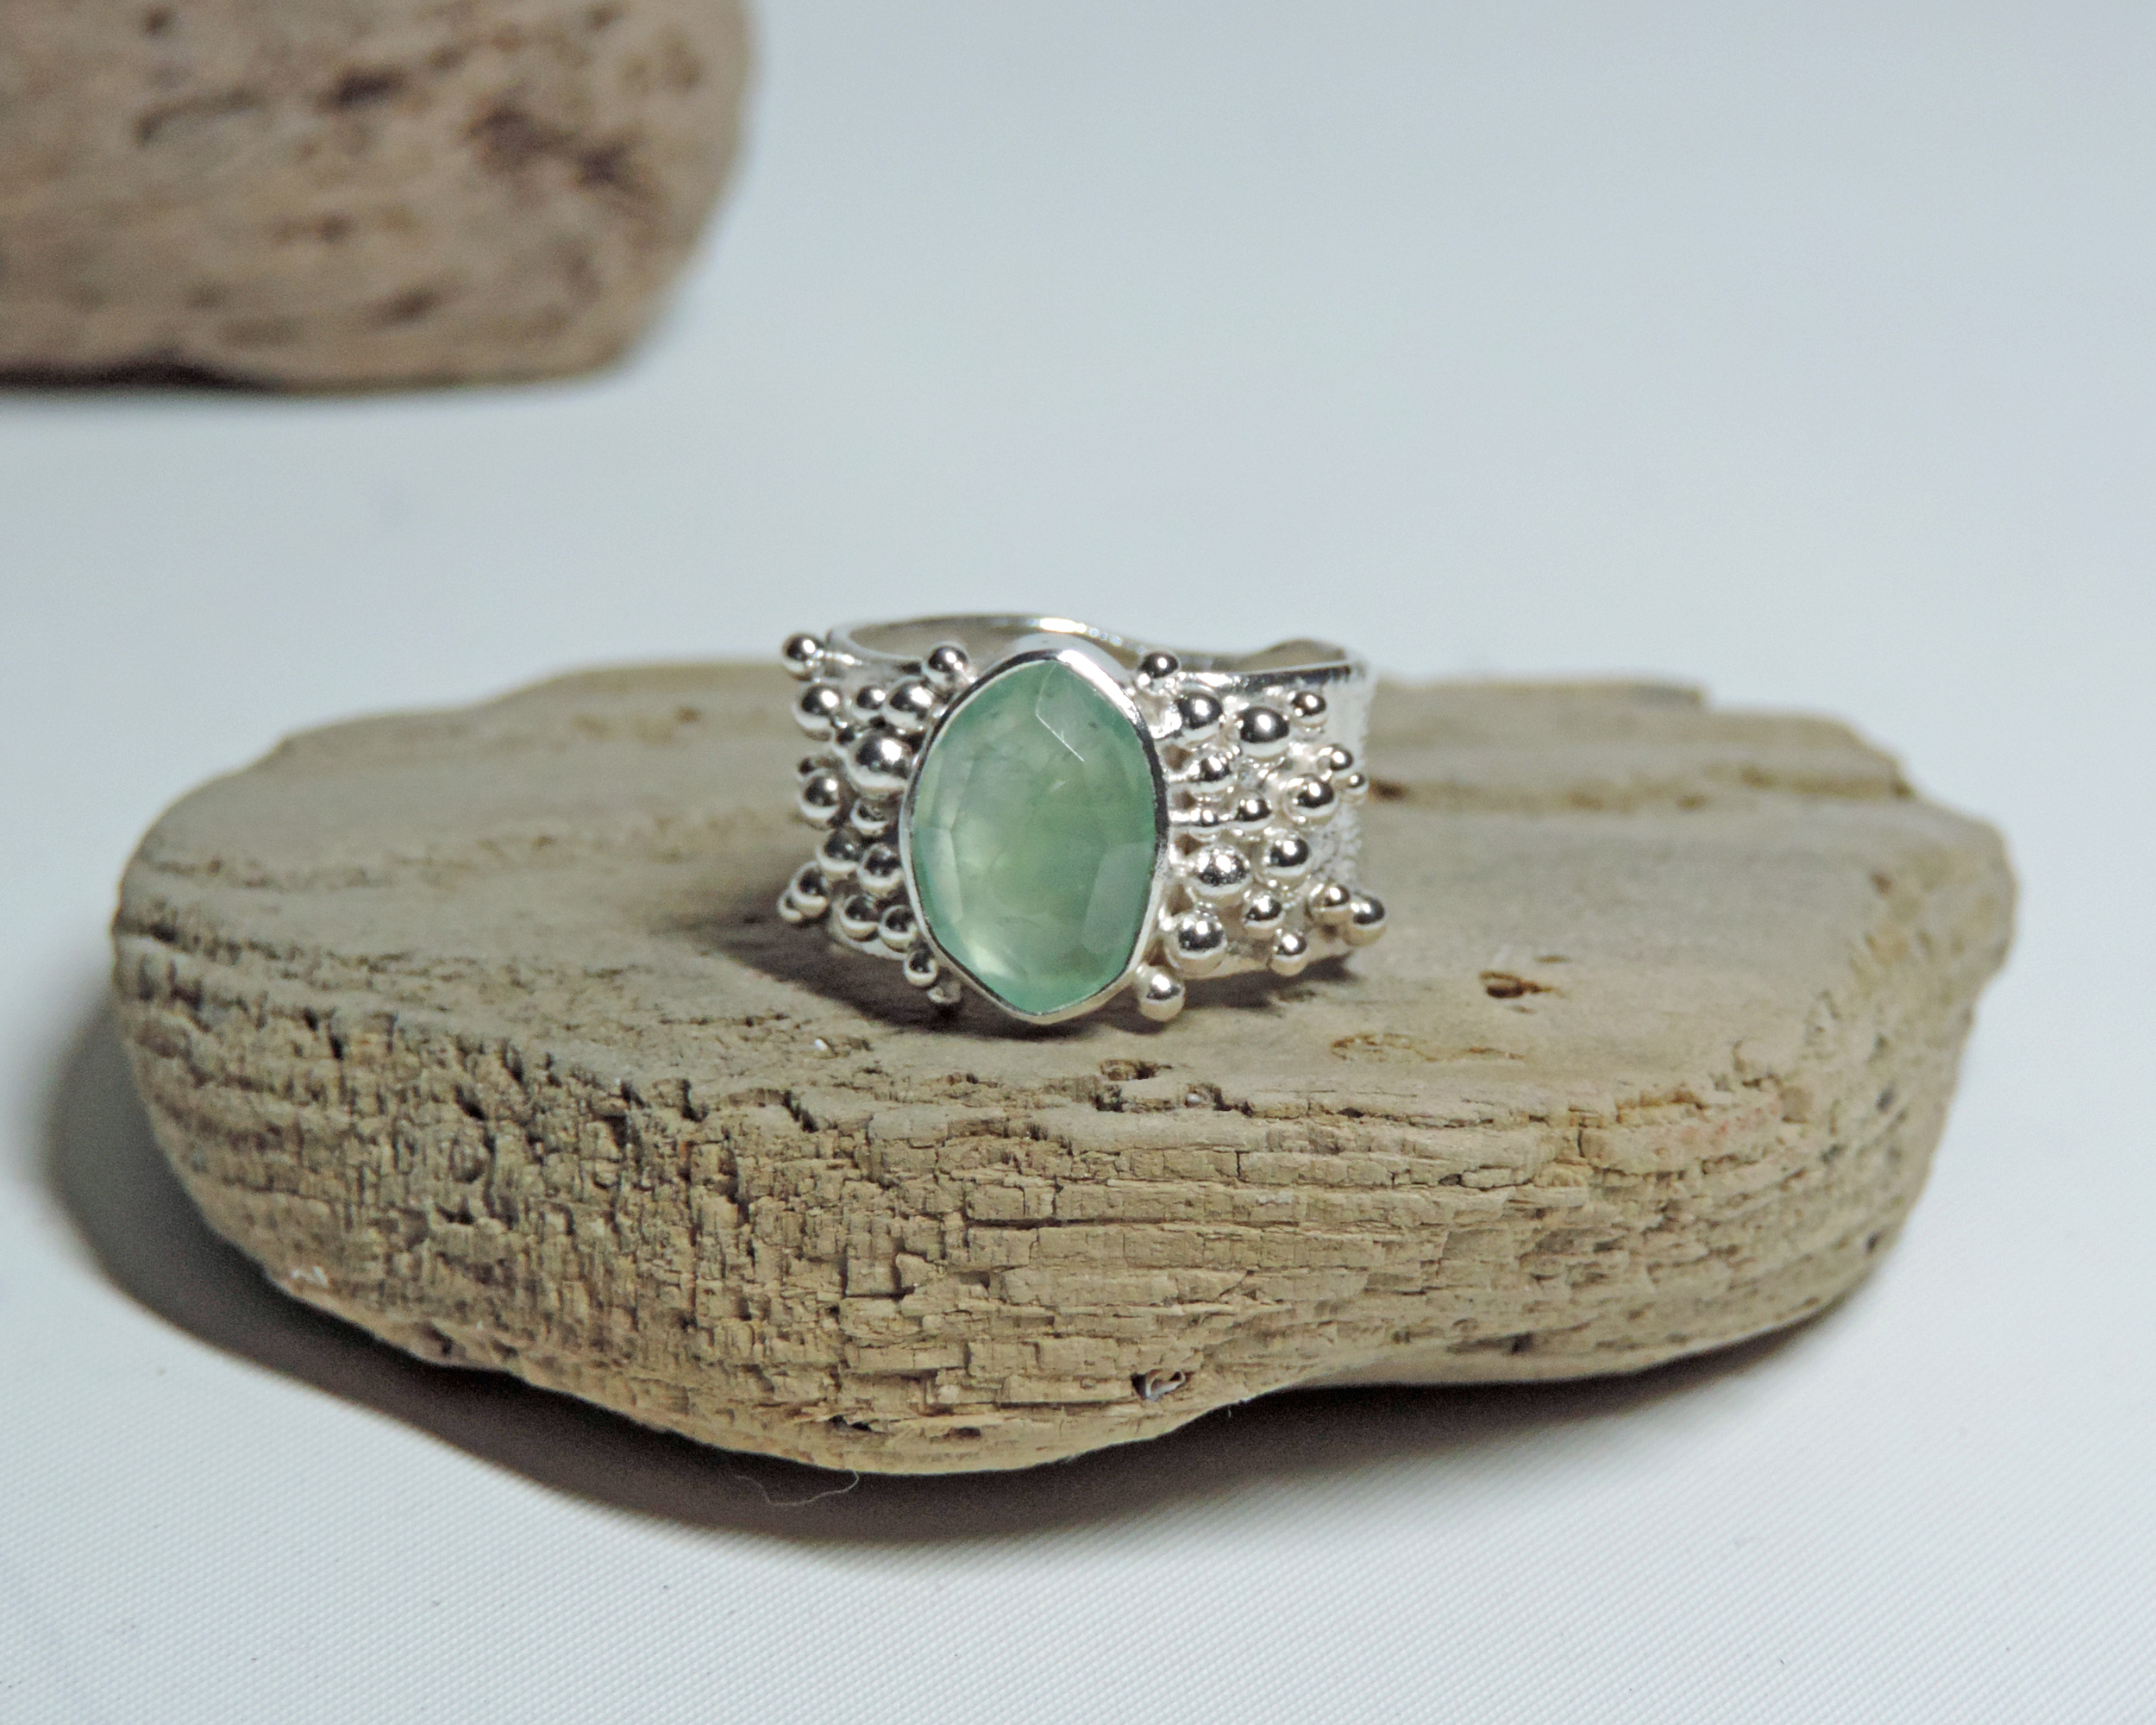 Large silver bauble ring with mint green tourmaline rose cut stone.